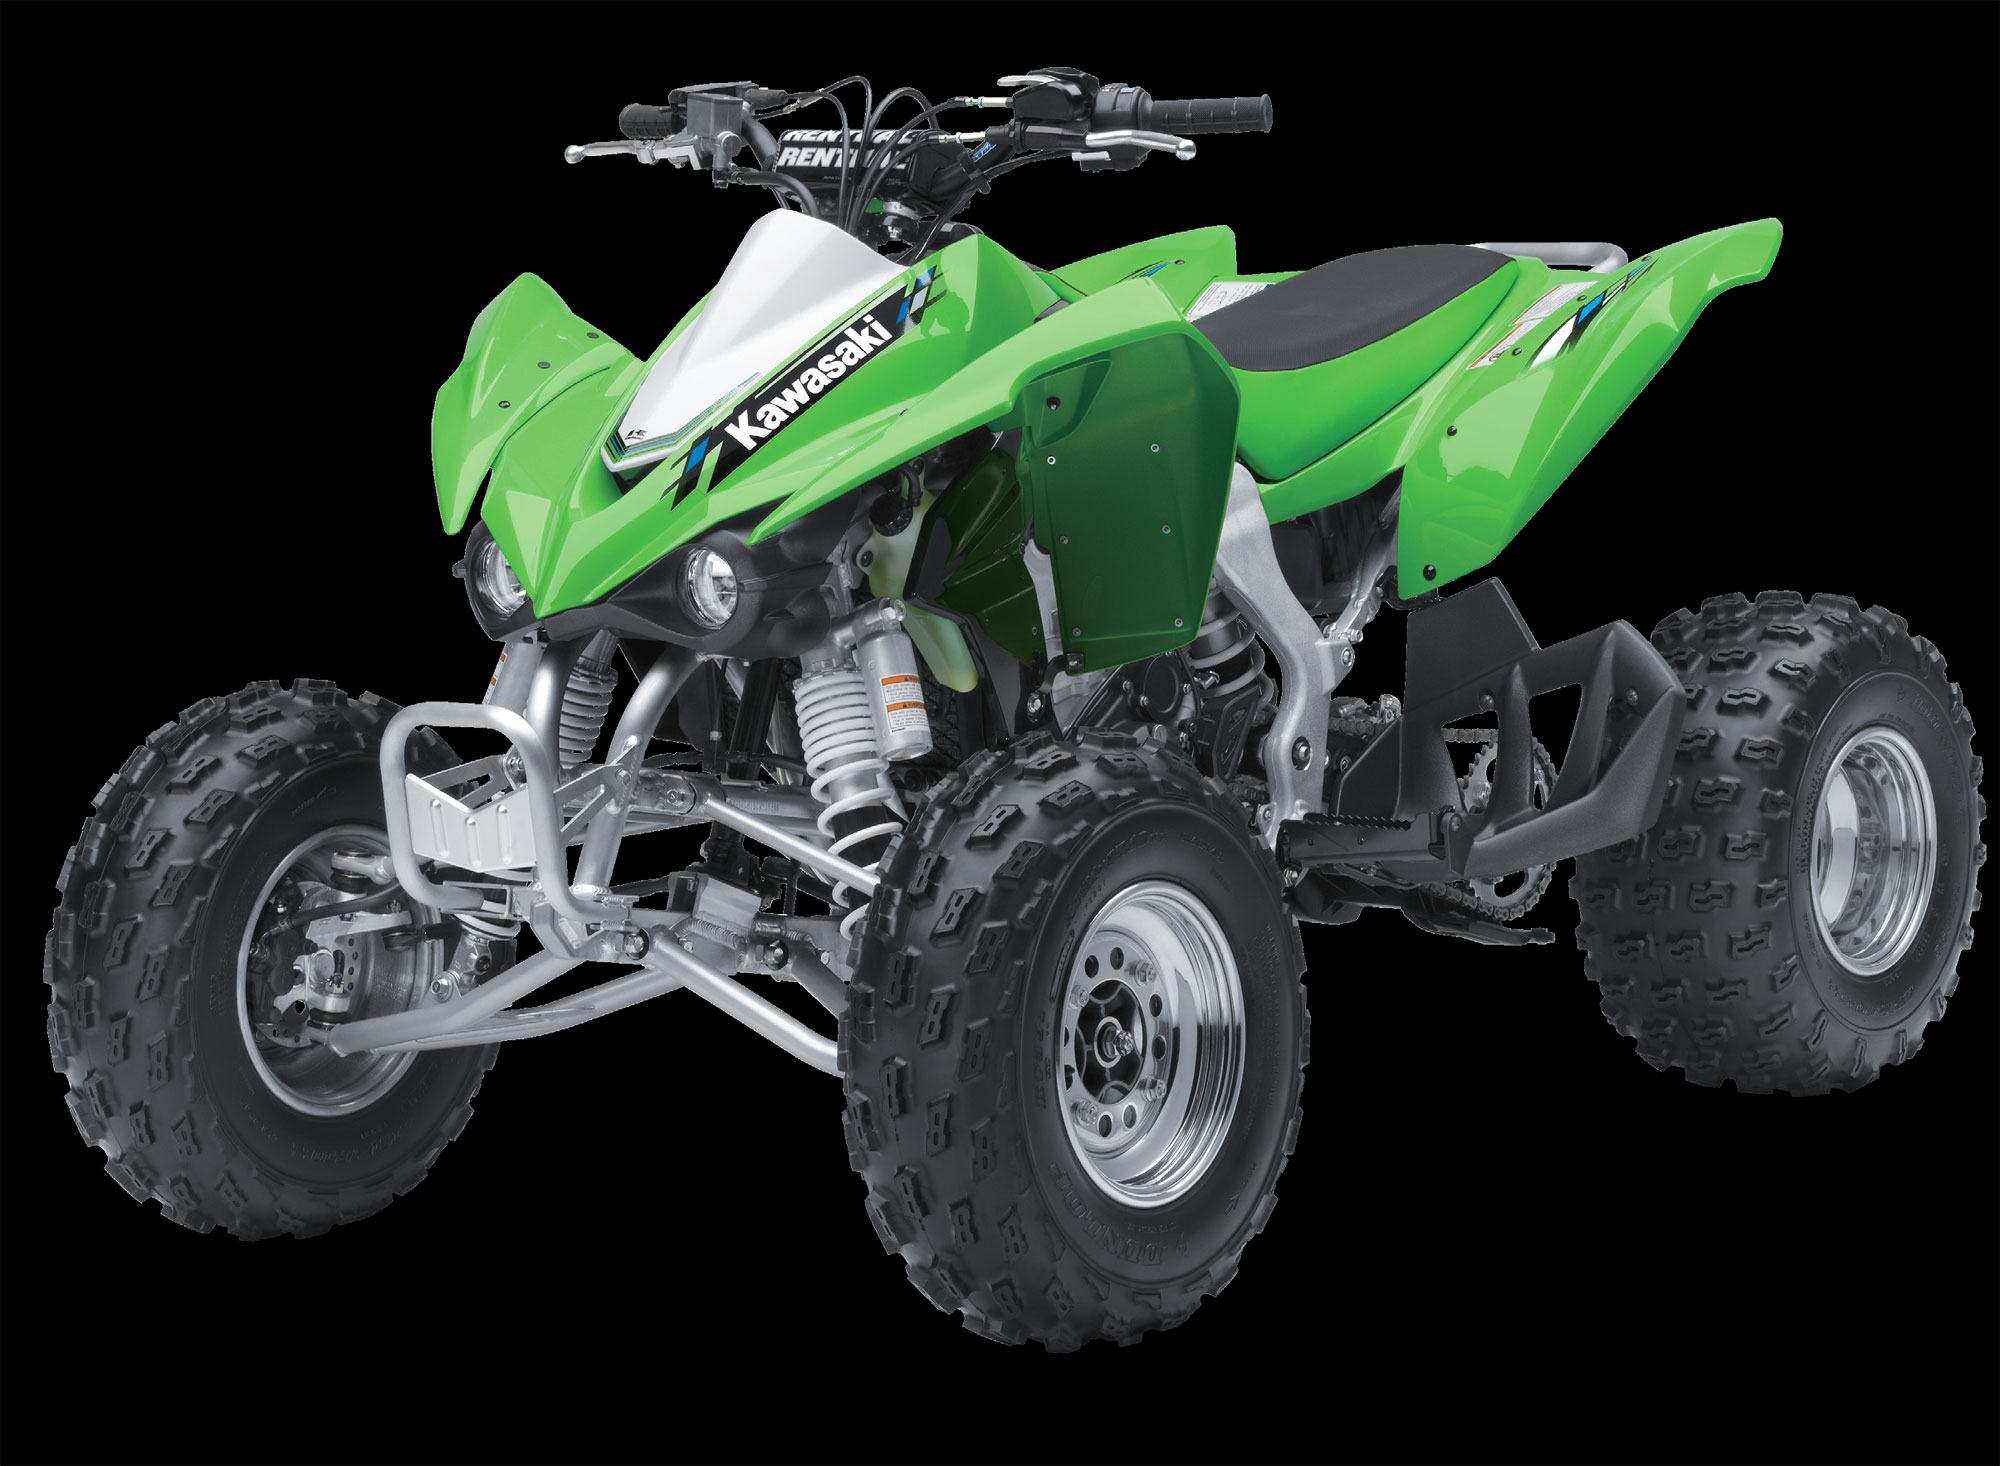 2013 Kawasaki KFX450R Review